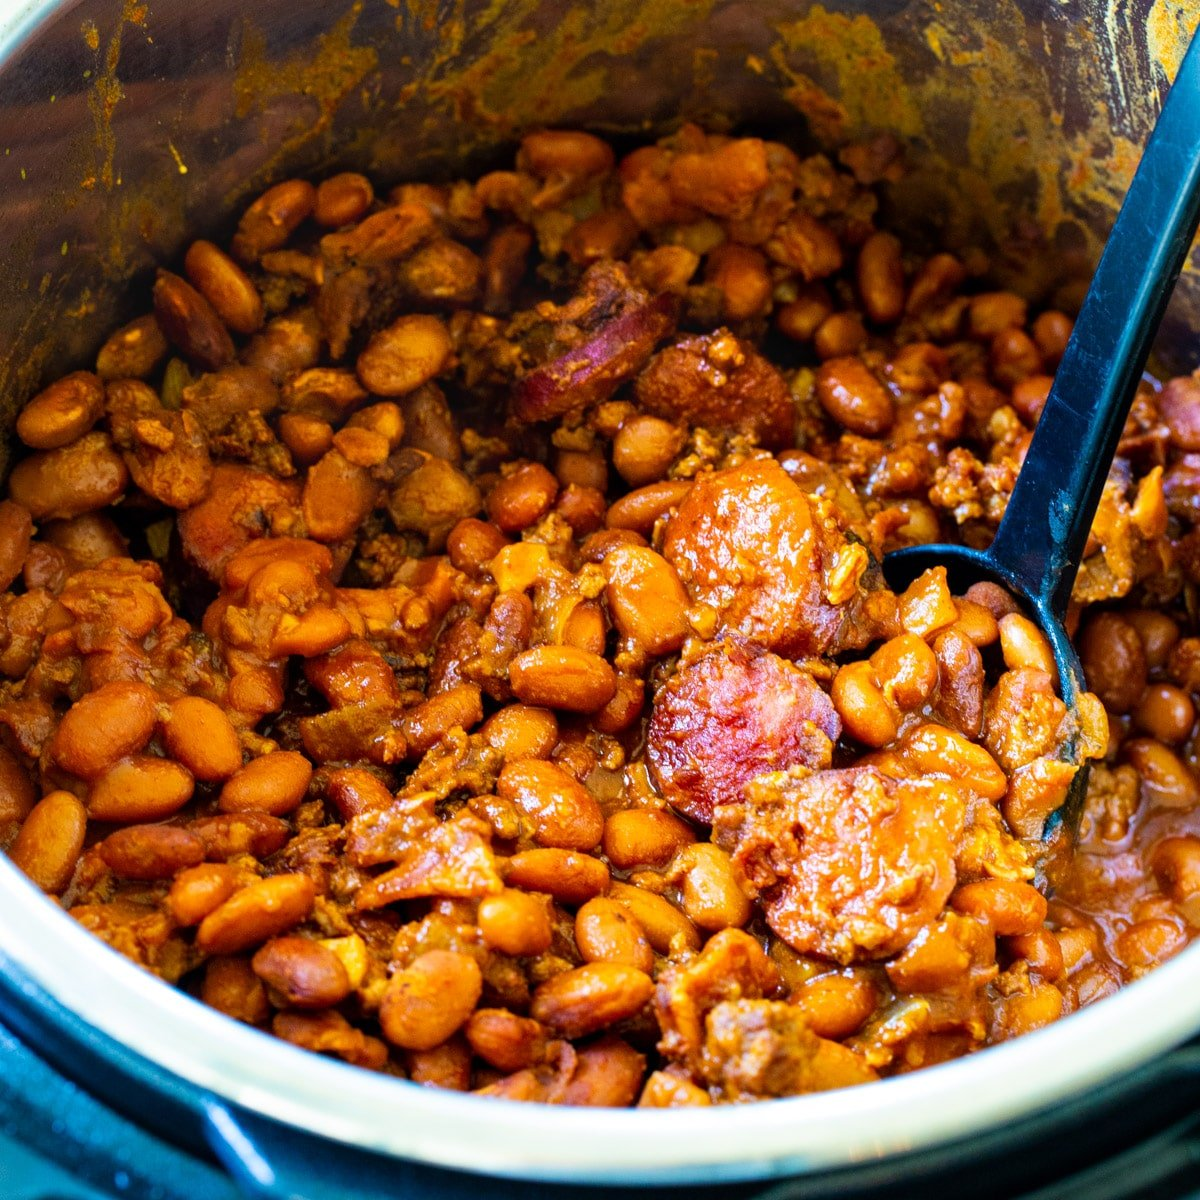 Instant Pot Cowboy Beans in Instant Pot with spoon.